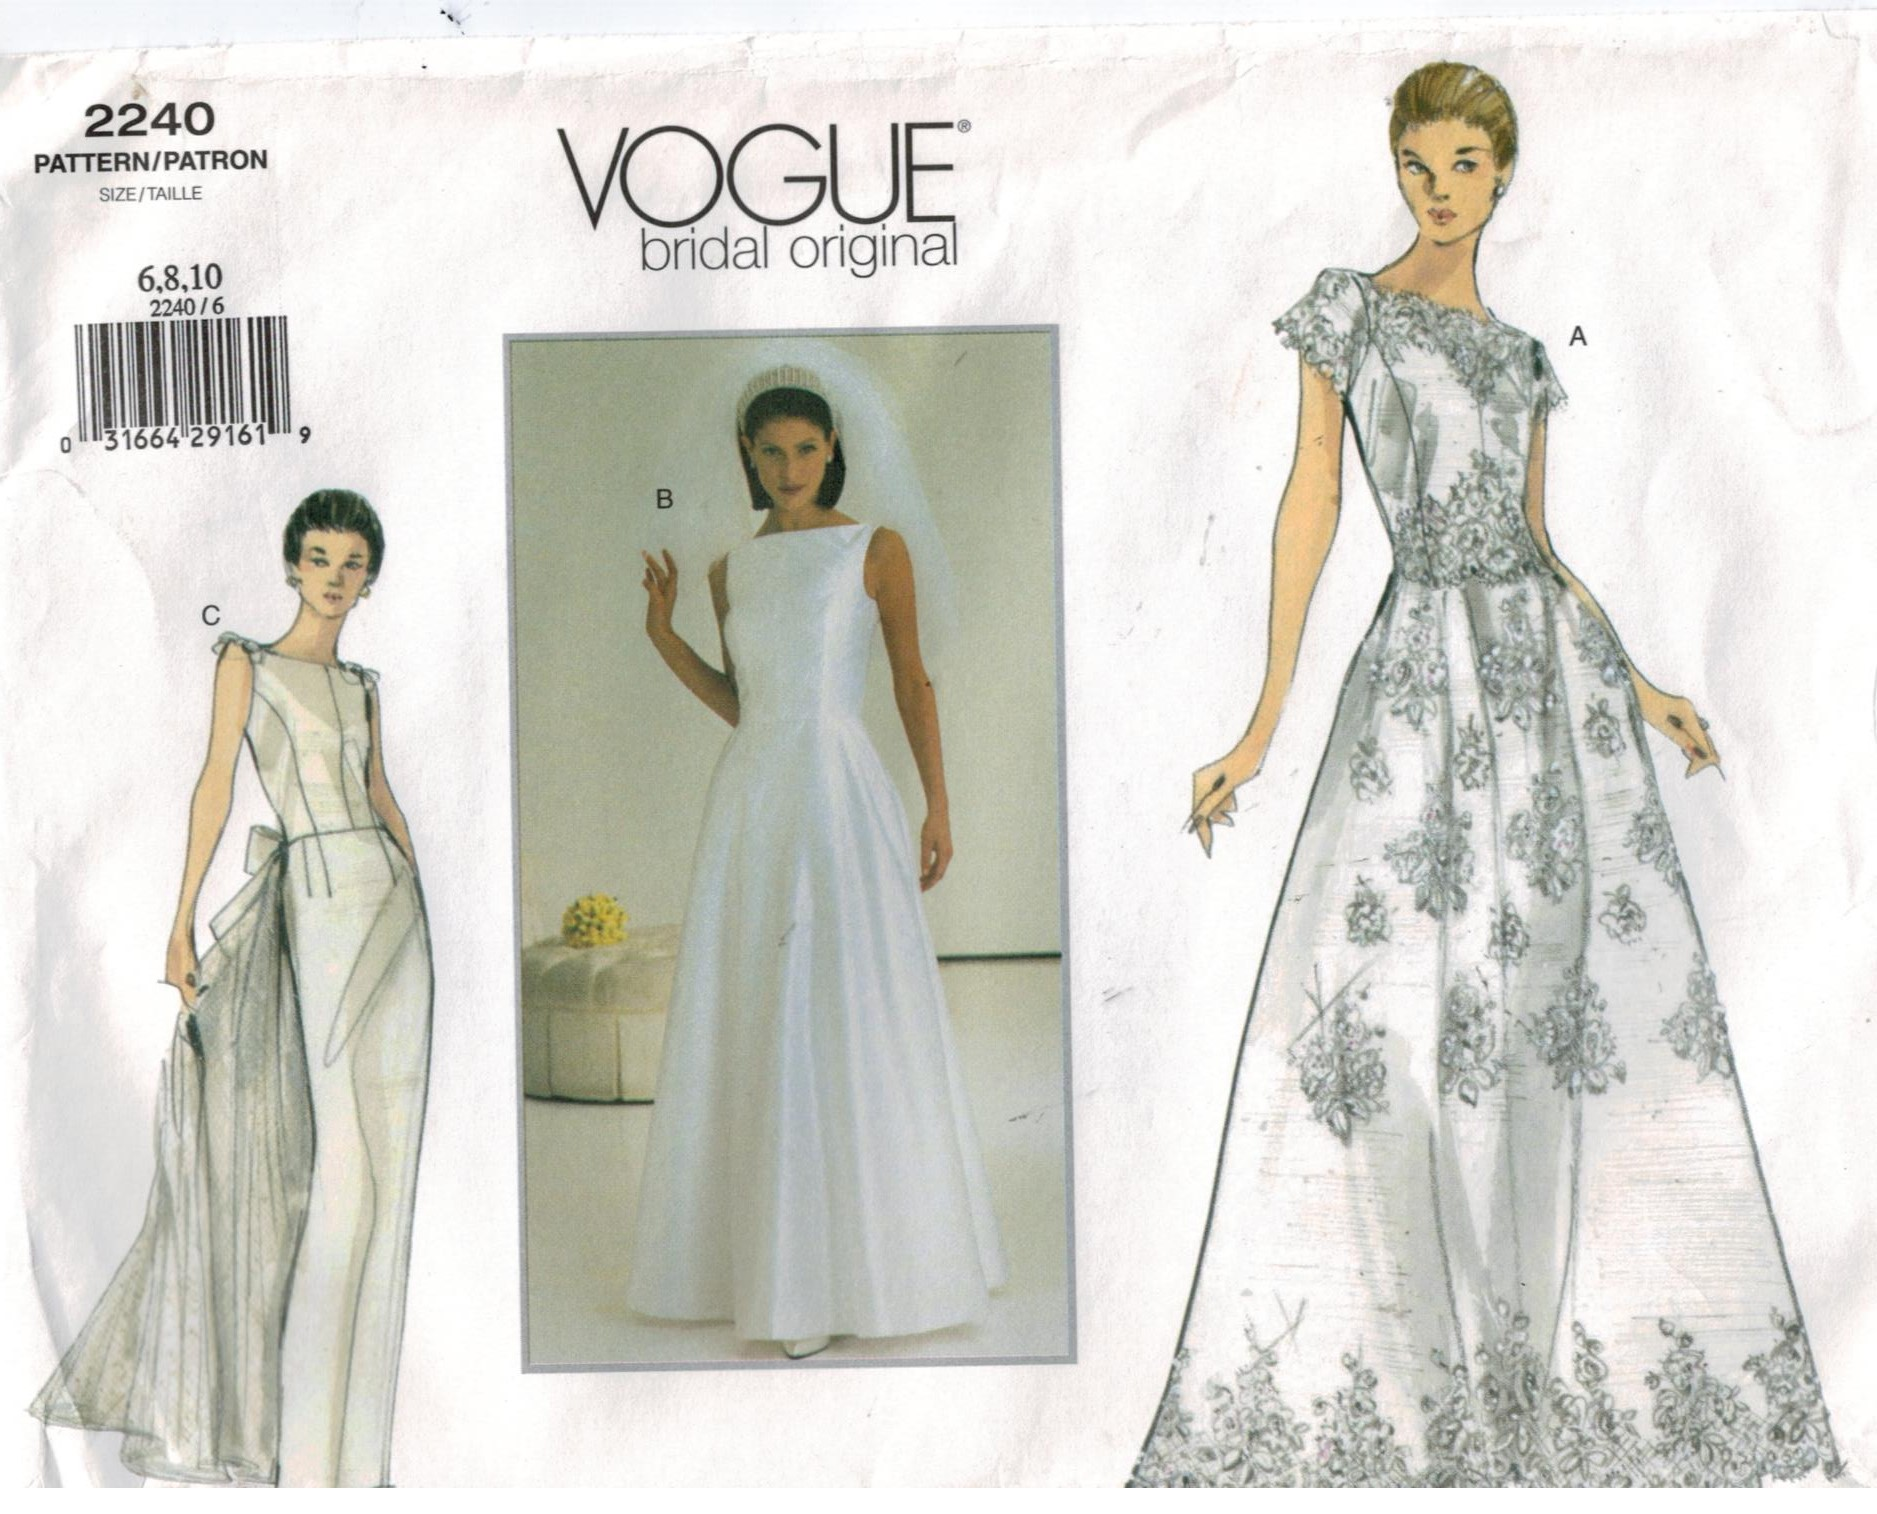 New vogue bridal dress patterns vintage pattern for Wedding dress patterns vintage